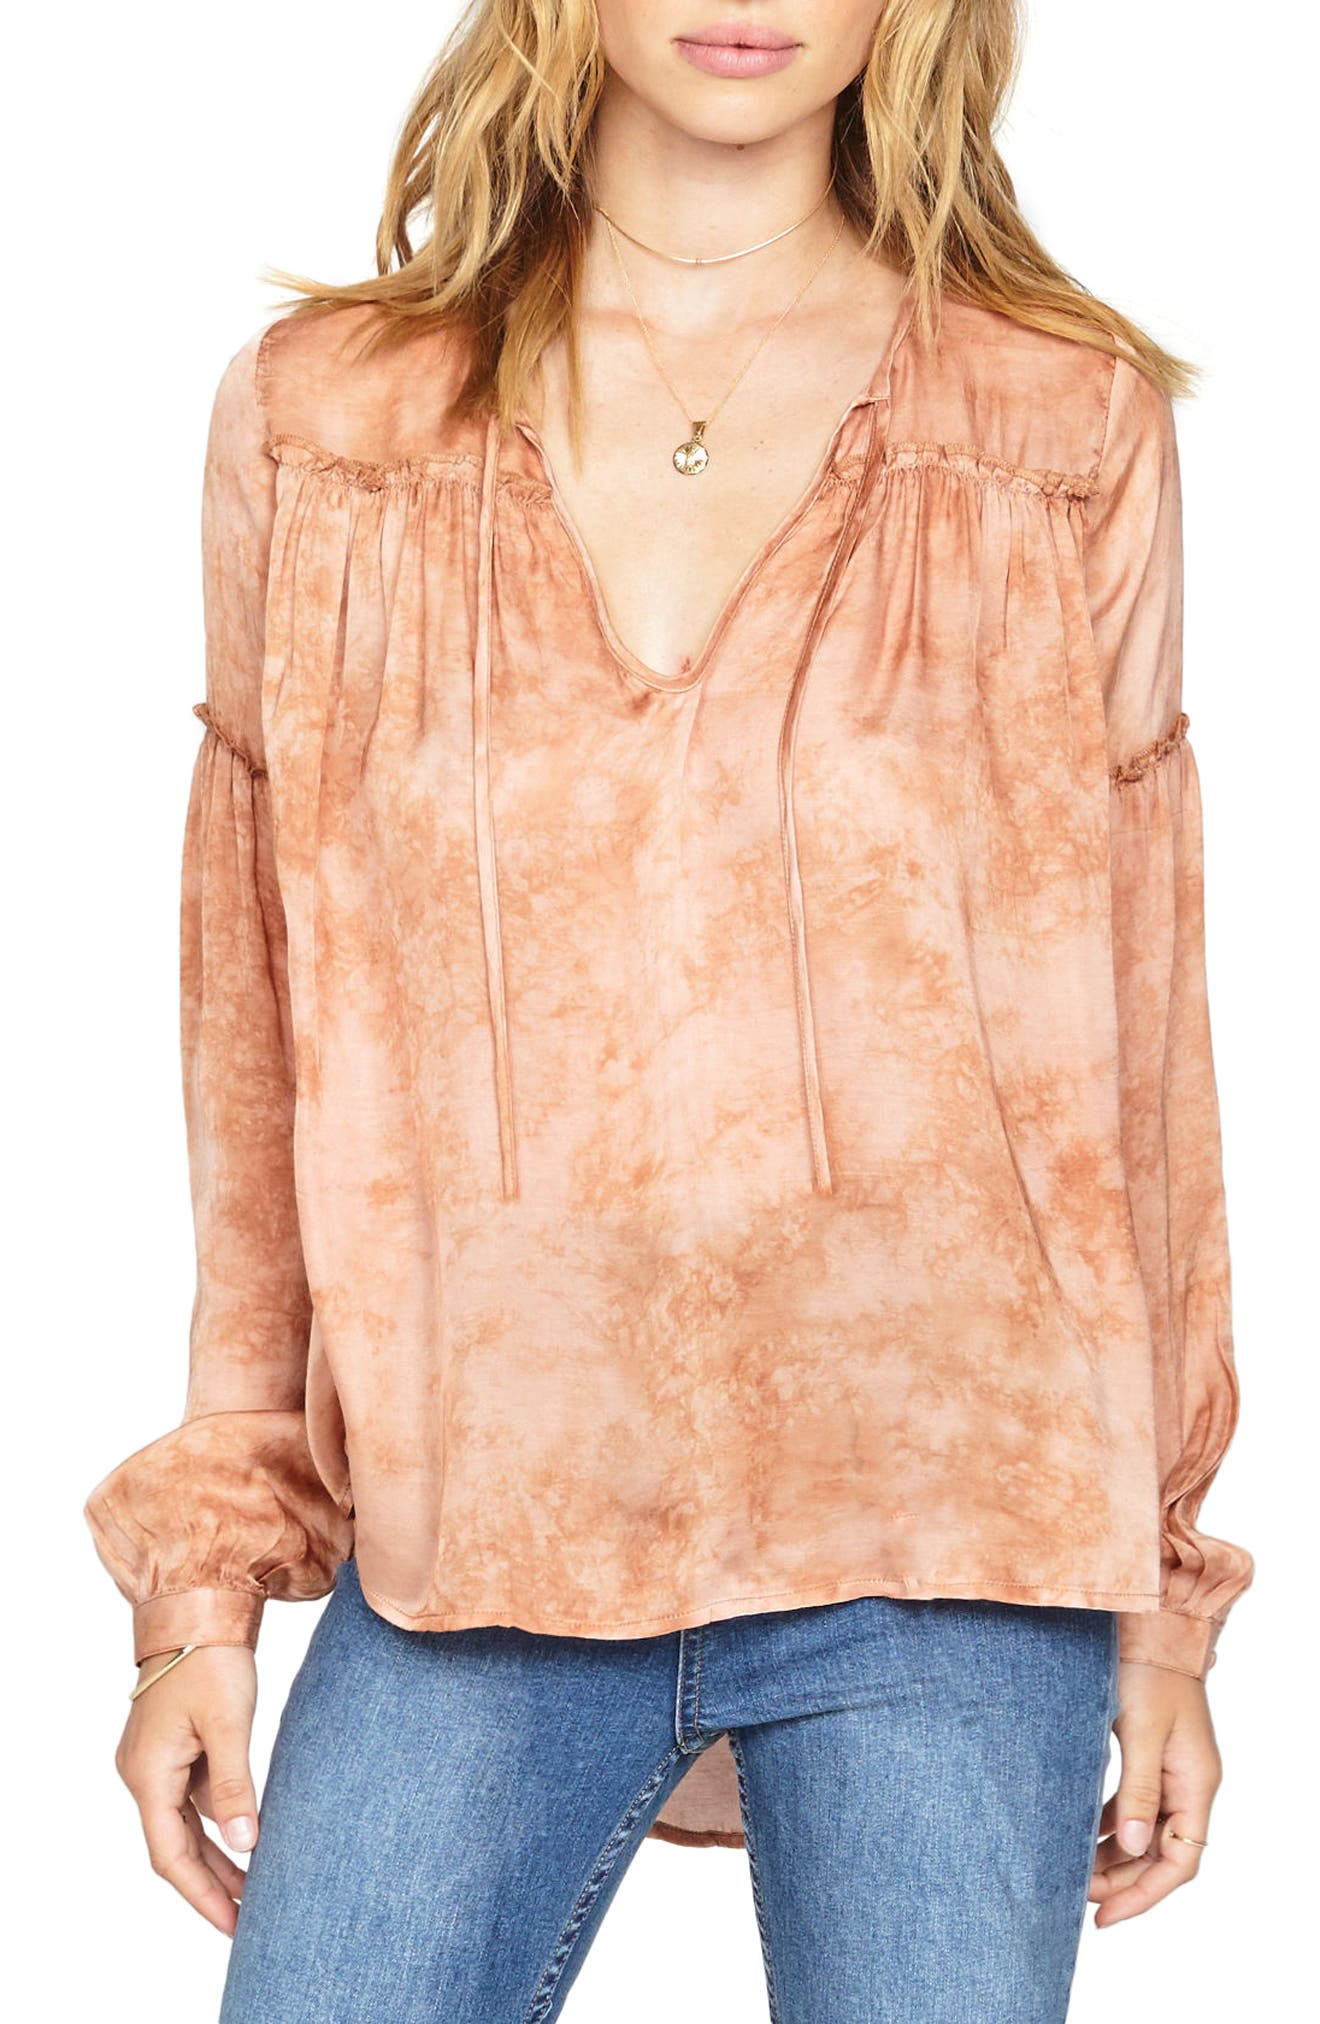 Main Image - Amuse Society Washed Out Top